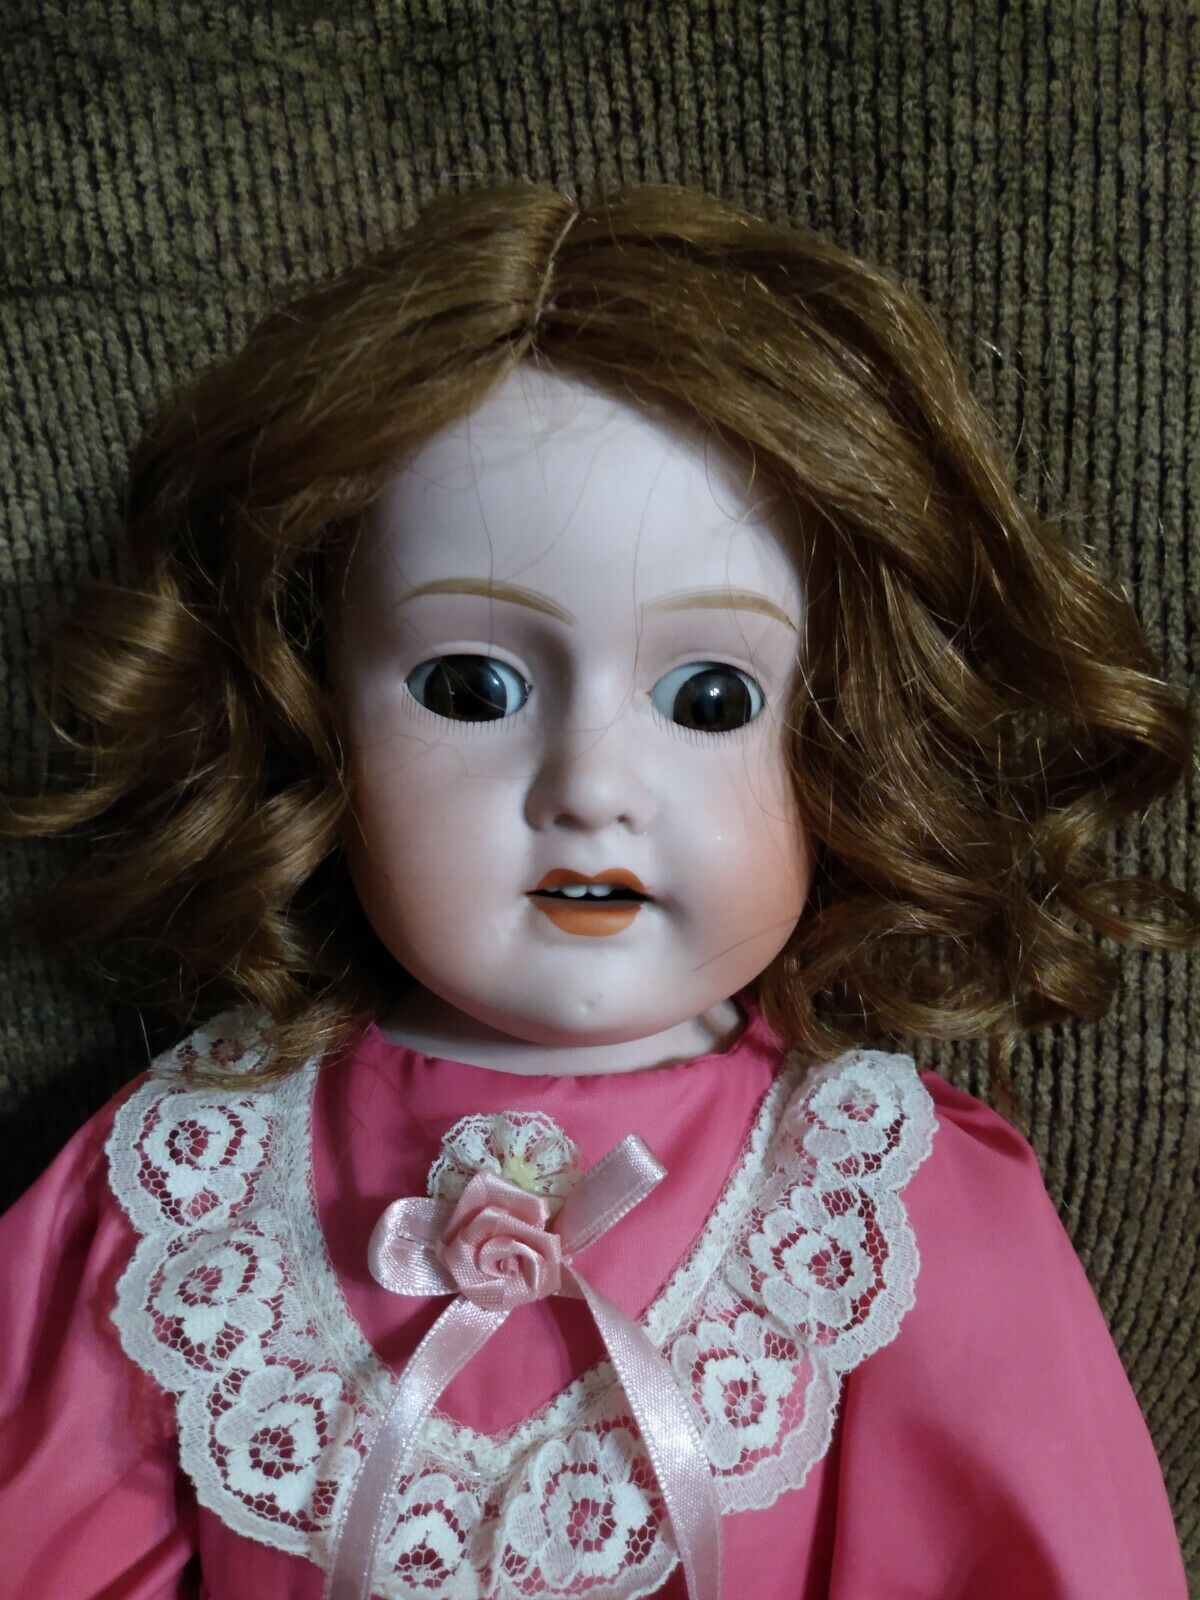 23 Antique Morimura Brothers Bisque Doll Nice Pink Dress Shoes Human Hair Wig - $99.00